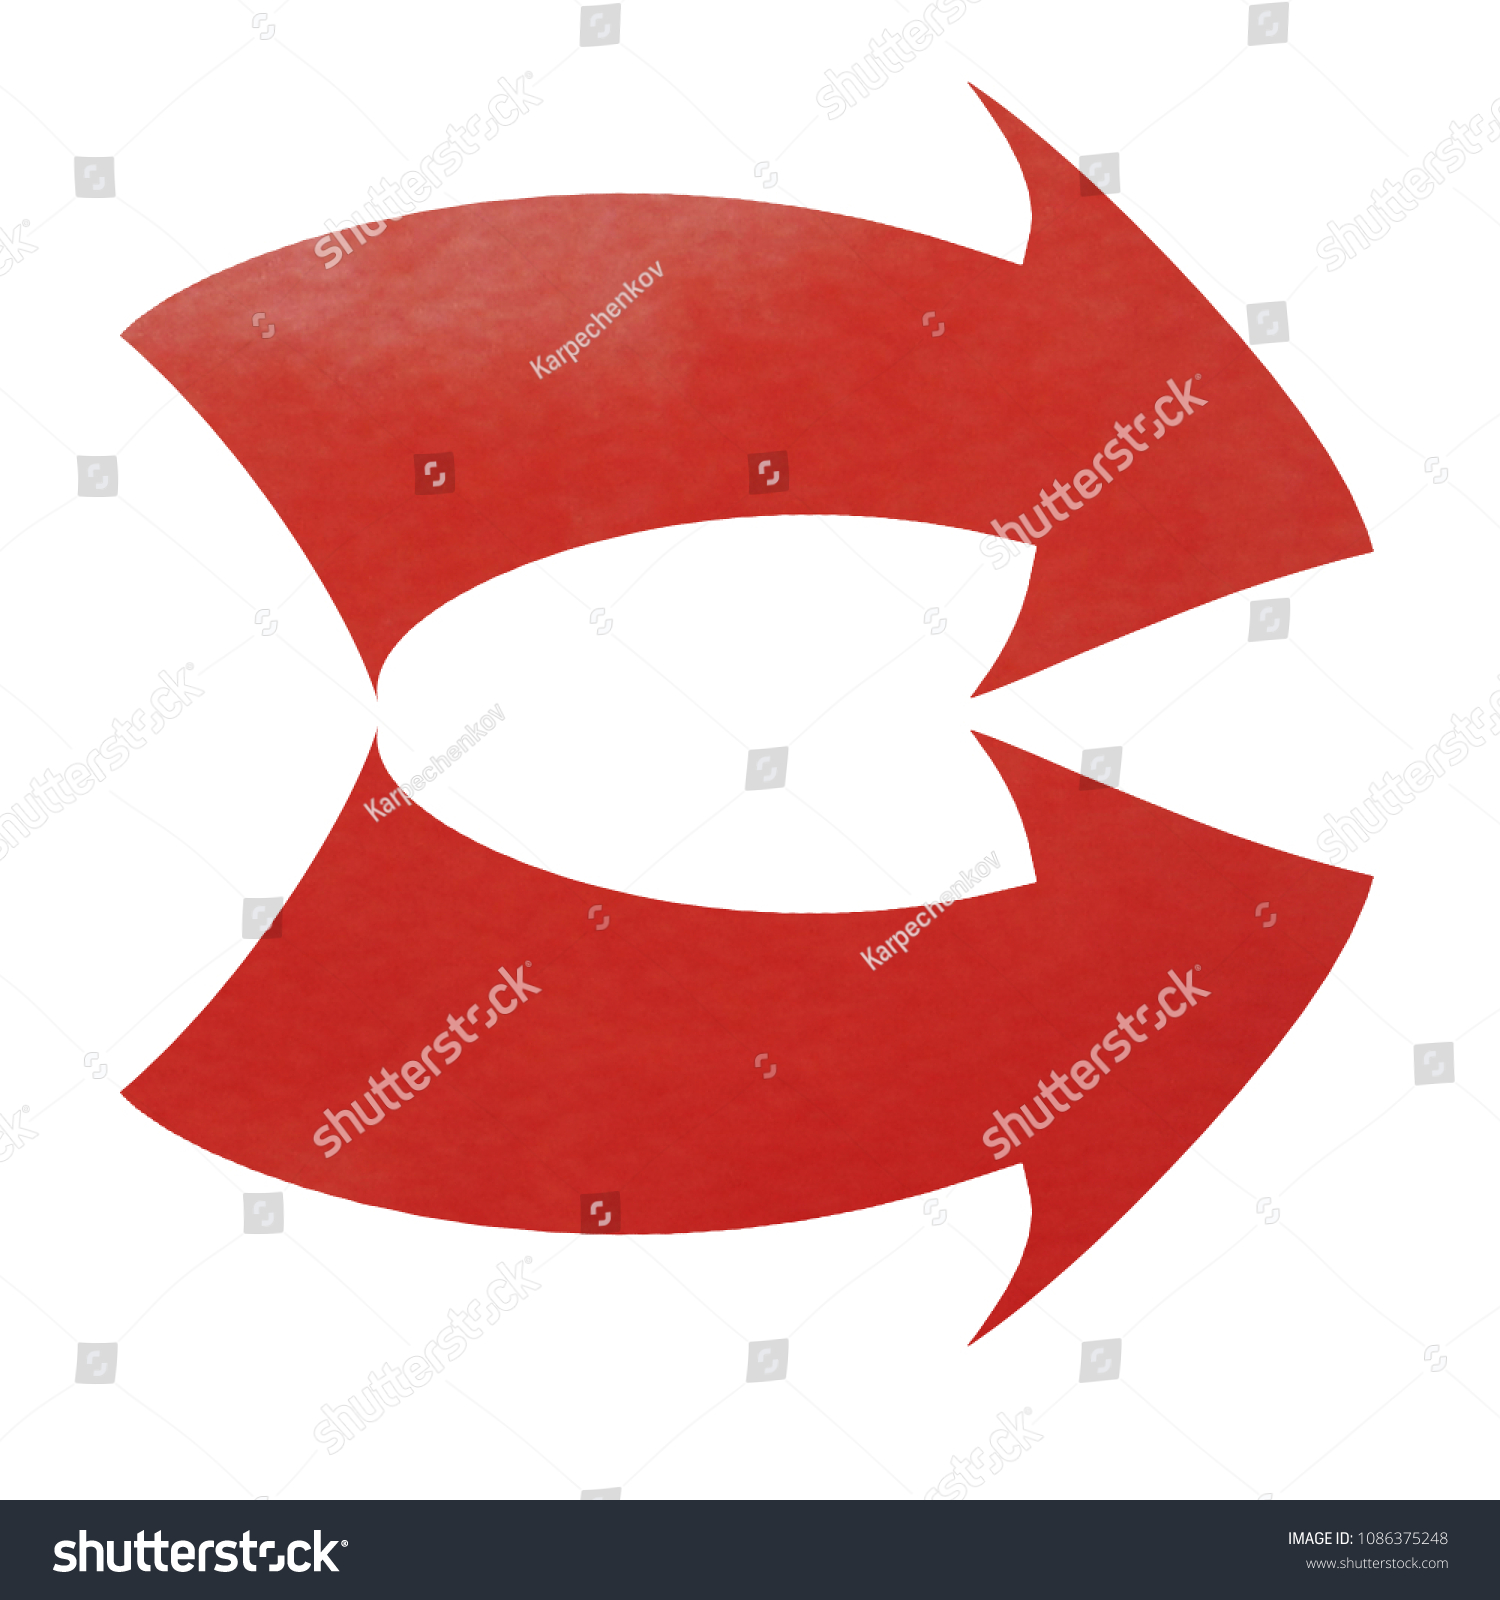 Right Arrow Symbol Double Arrows Sign Stock Illustration 1086375248